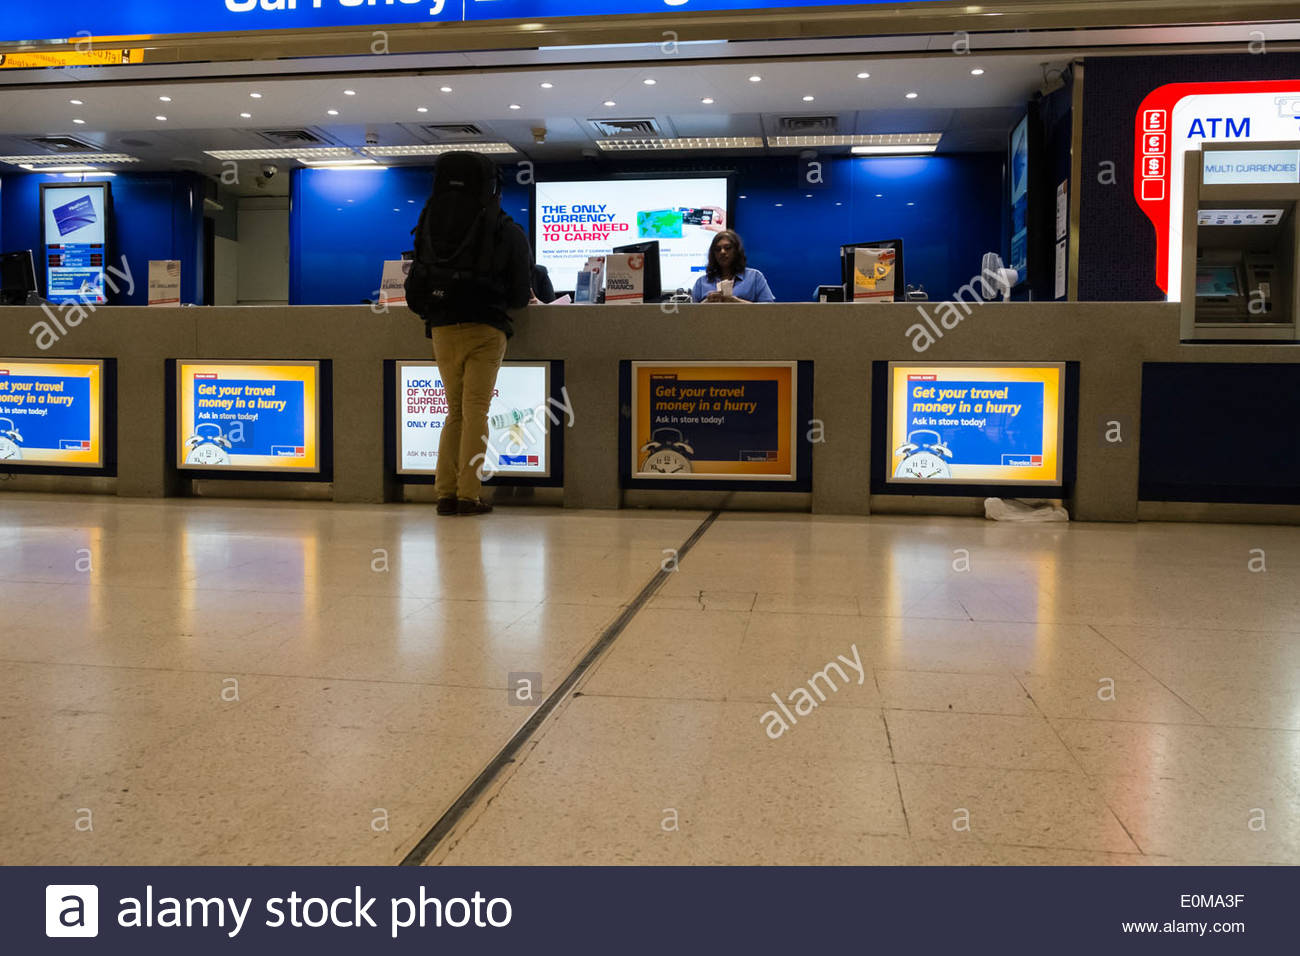 travelex airport photos travelex airport images alamy. Black Bedroom Furniture Sets. Home Design Ideas